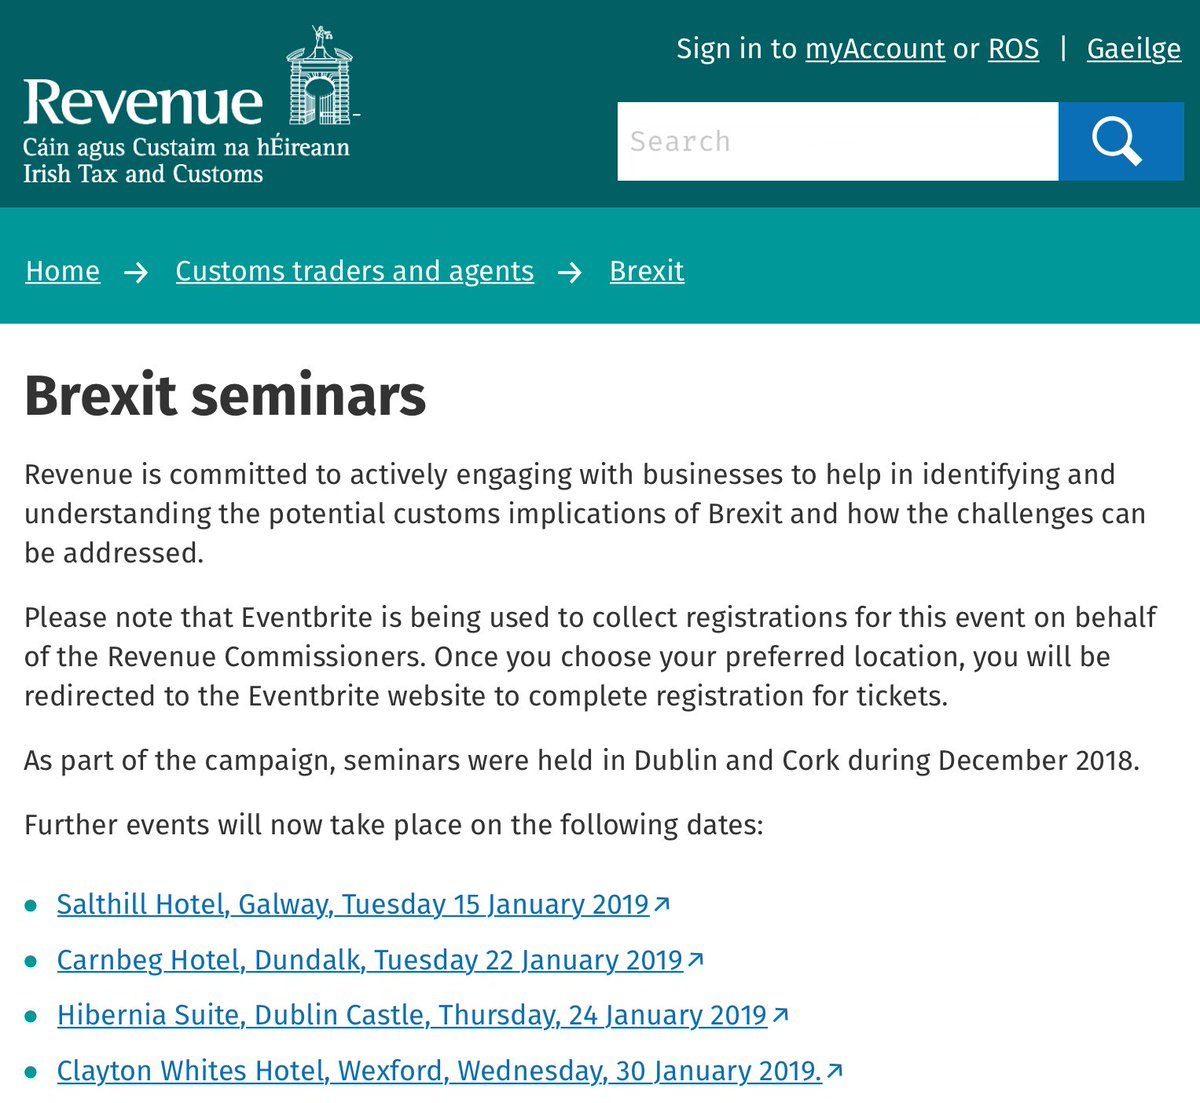 Revenue Seminar | Brexit Tuesday 22 January @CarnbegHotel, #Dundalk  Large Importers/Exporters & Logistics Companies that trade with, or have goods moving through, the UK are encouraged to attend the upcoming @RevenueIE #Brexit Seminar https://www.revenue.ie/en/customs-traders-and-agents/brexit/brexit-seminars/index.aspx … #LouthChat